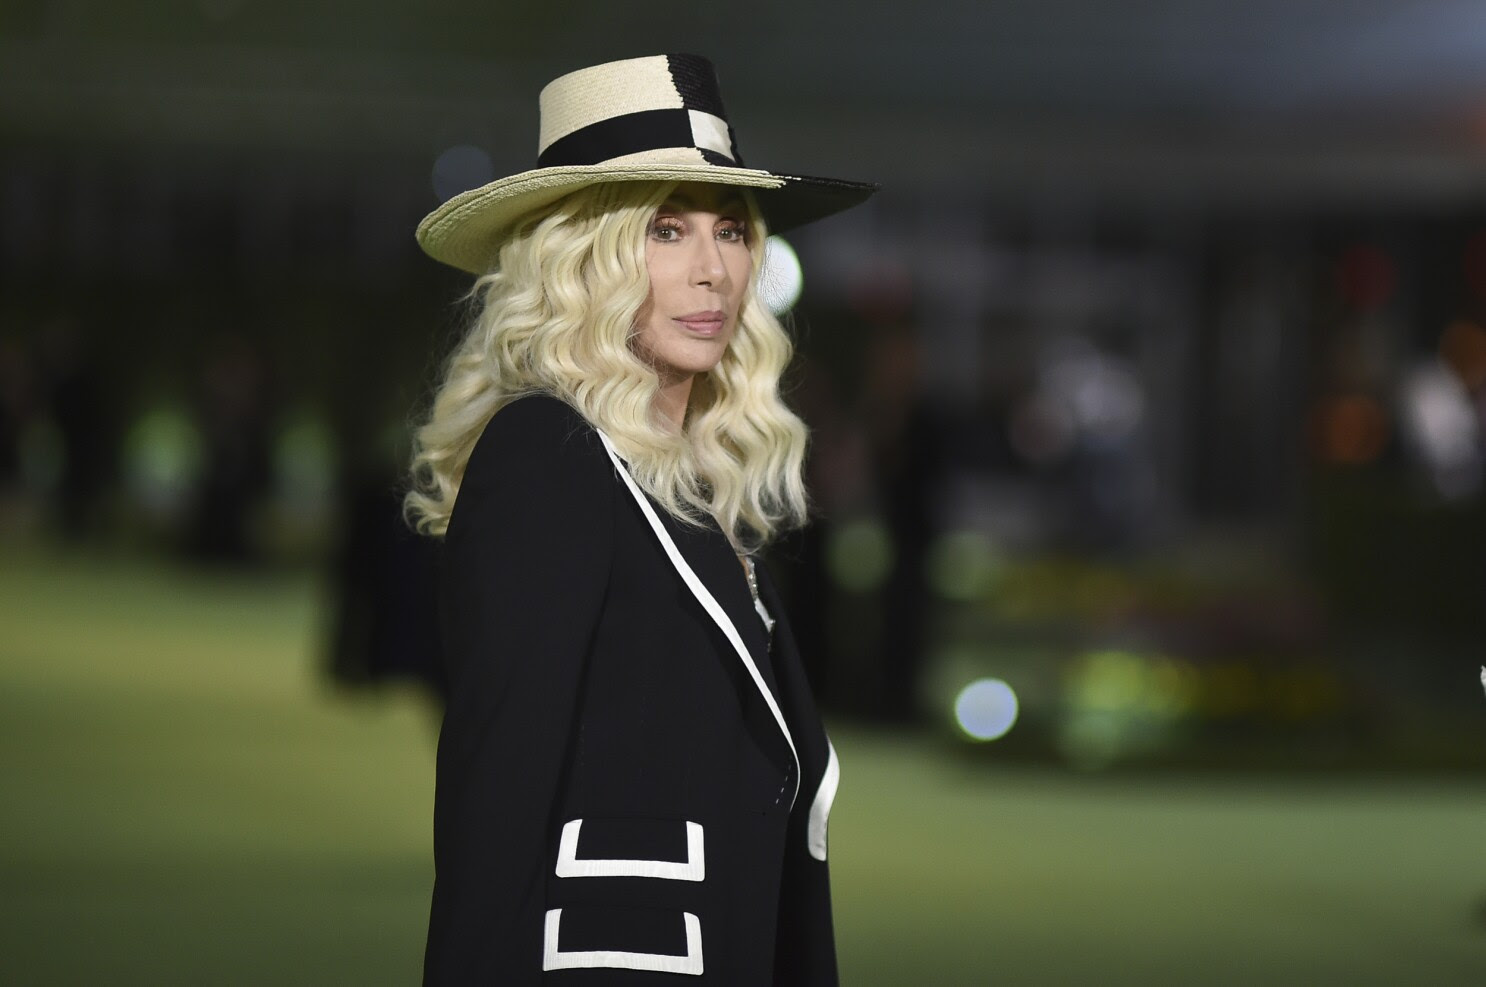 Why Cher is suing Sonny Bono's widow, Mary Bono